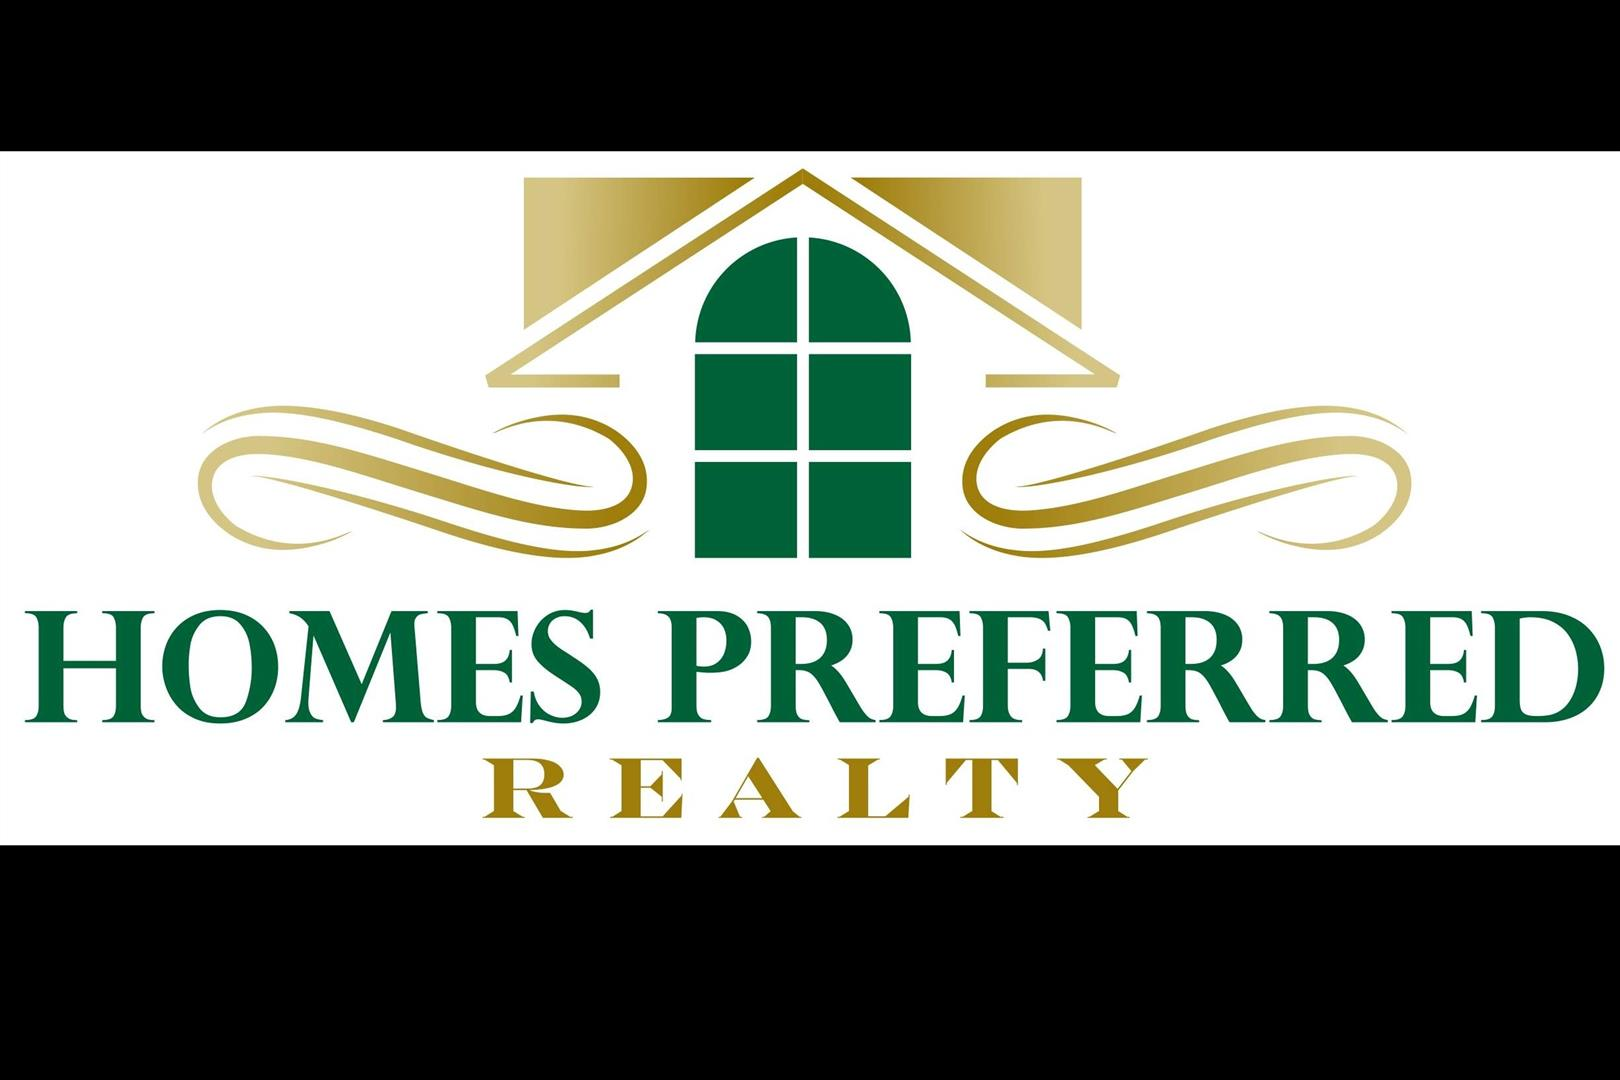 Homes Preferred Realty